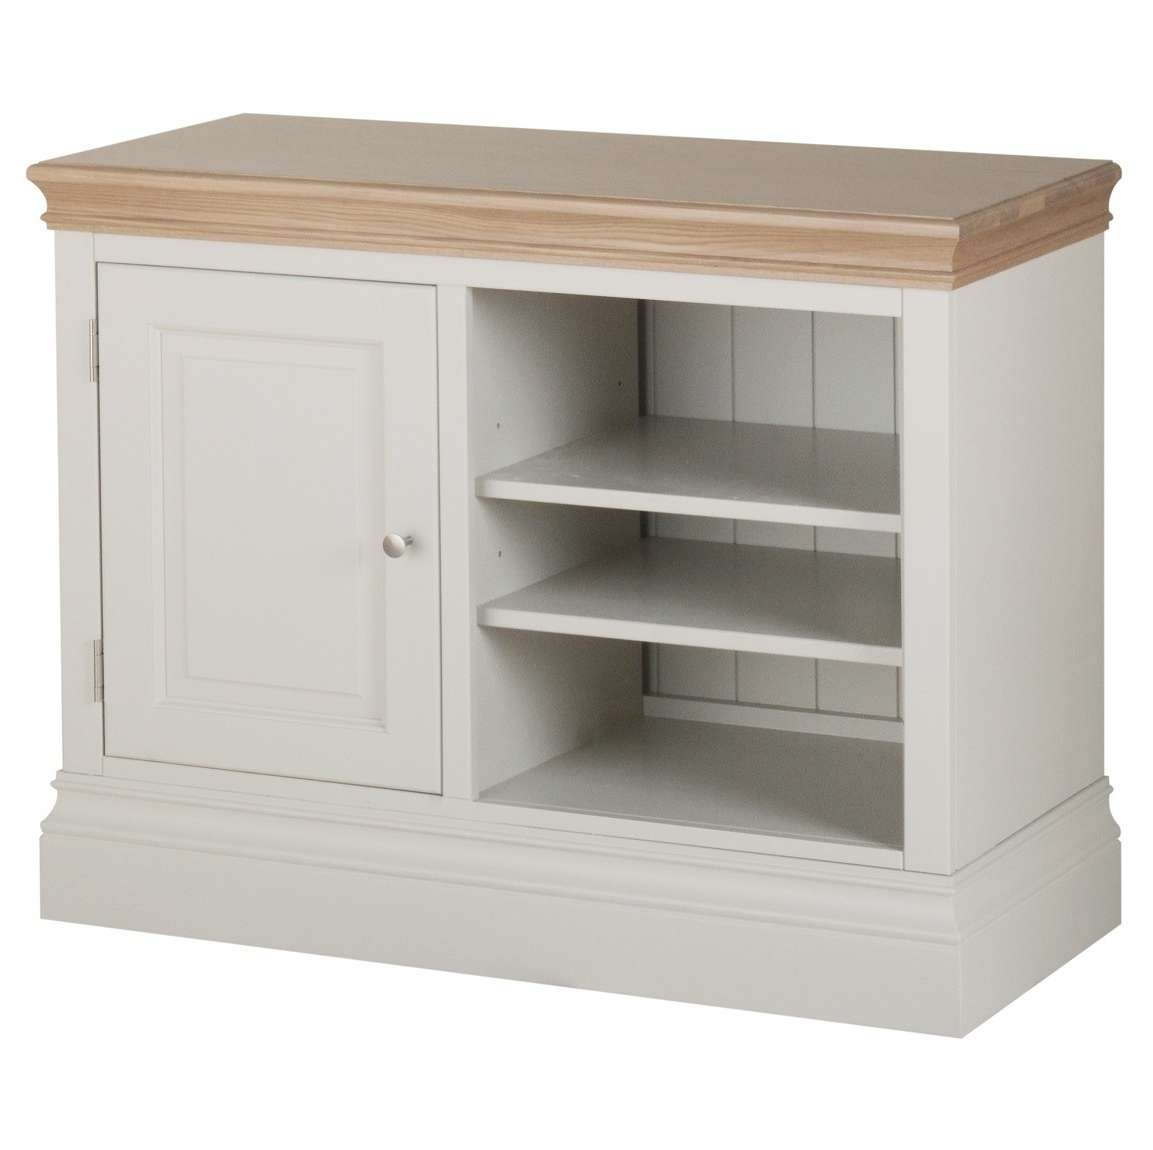 Country Oak And Painted Small Tv Cabinet | Oak Furniture Uk Throughout Country Tv Stands (View 5 of 15)